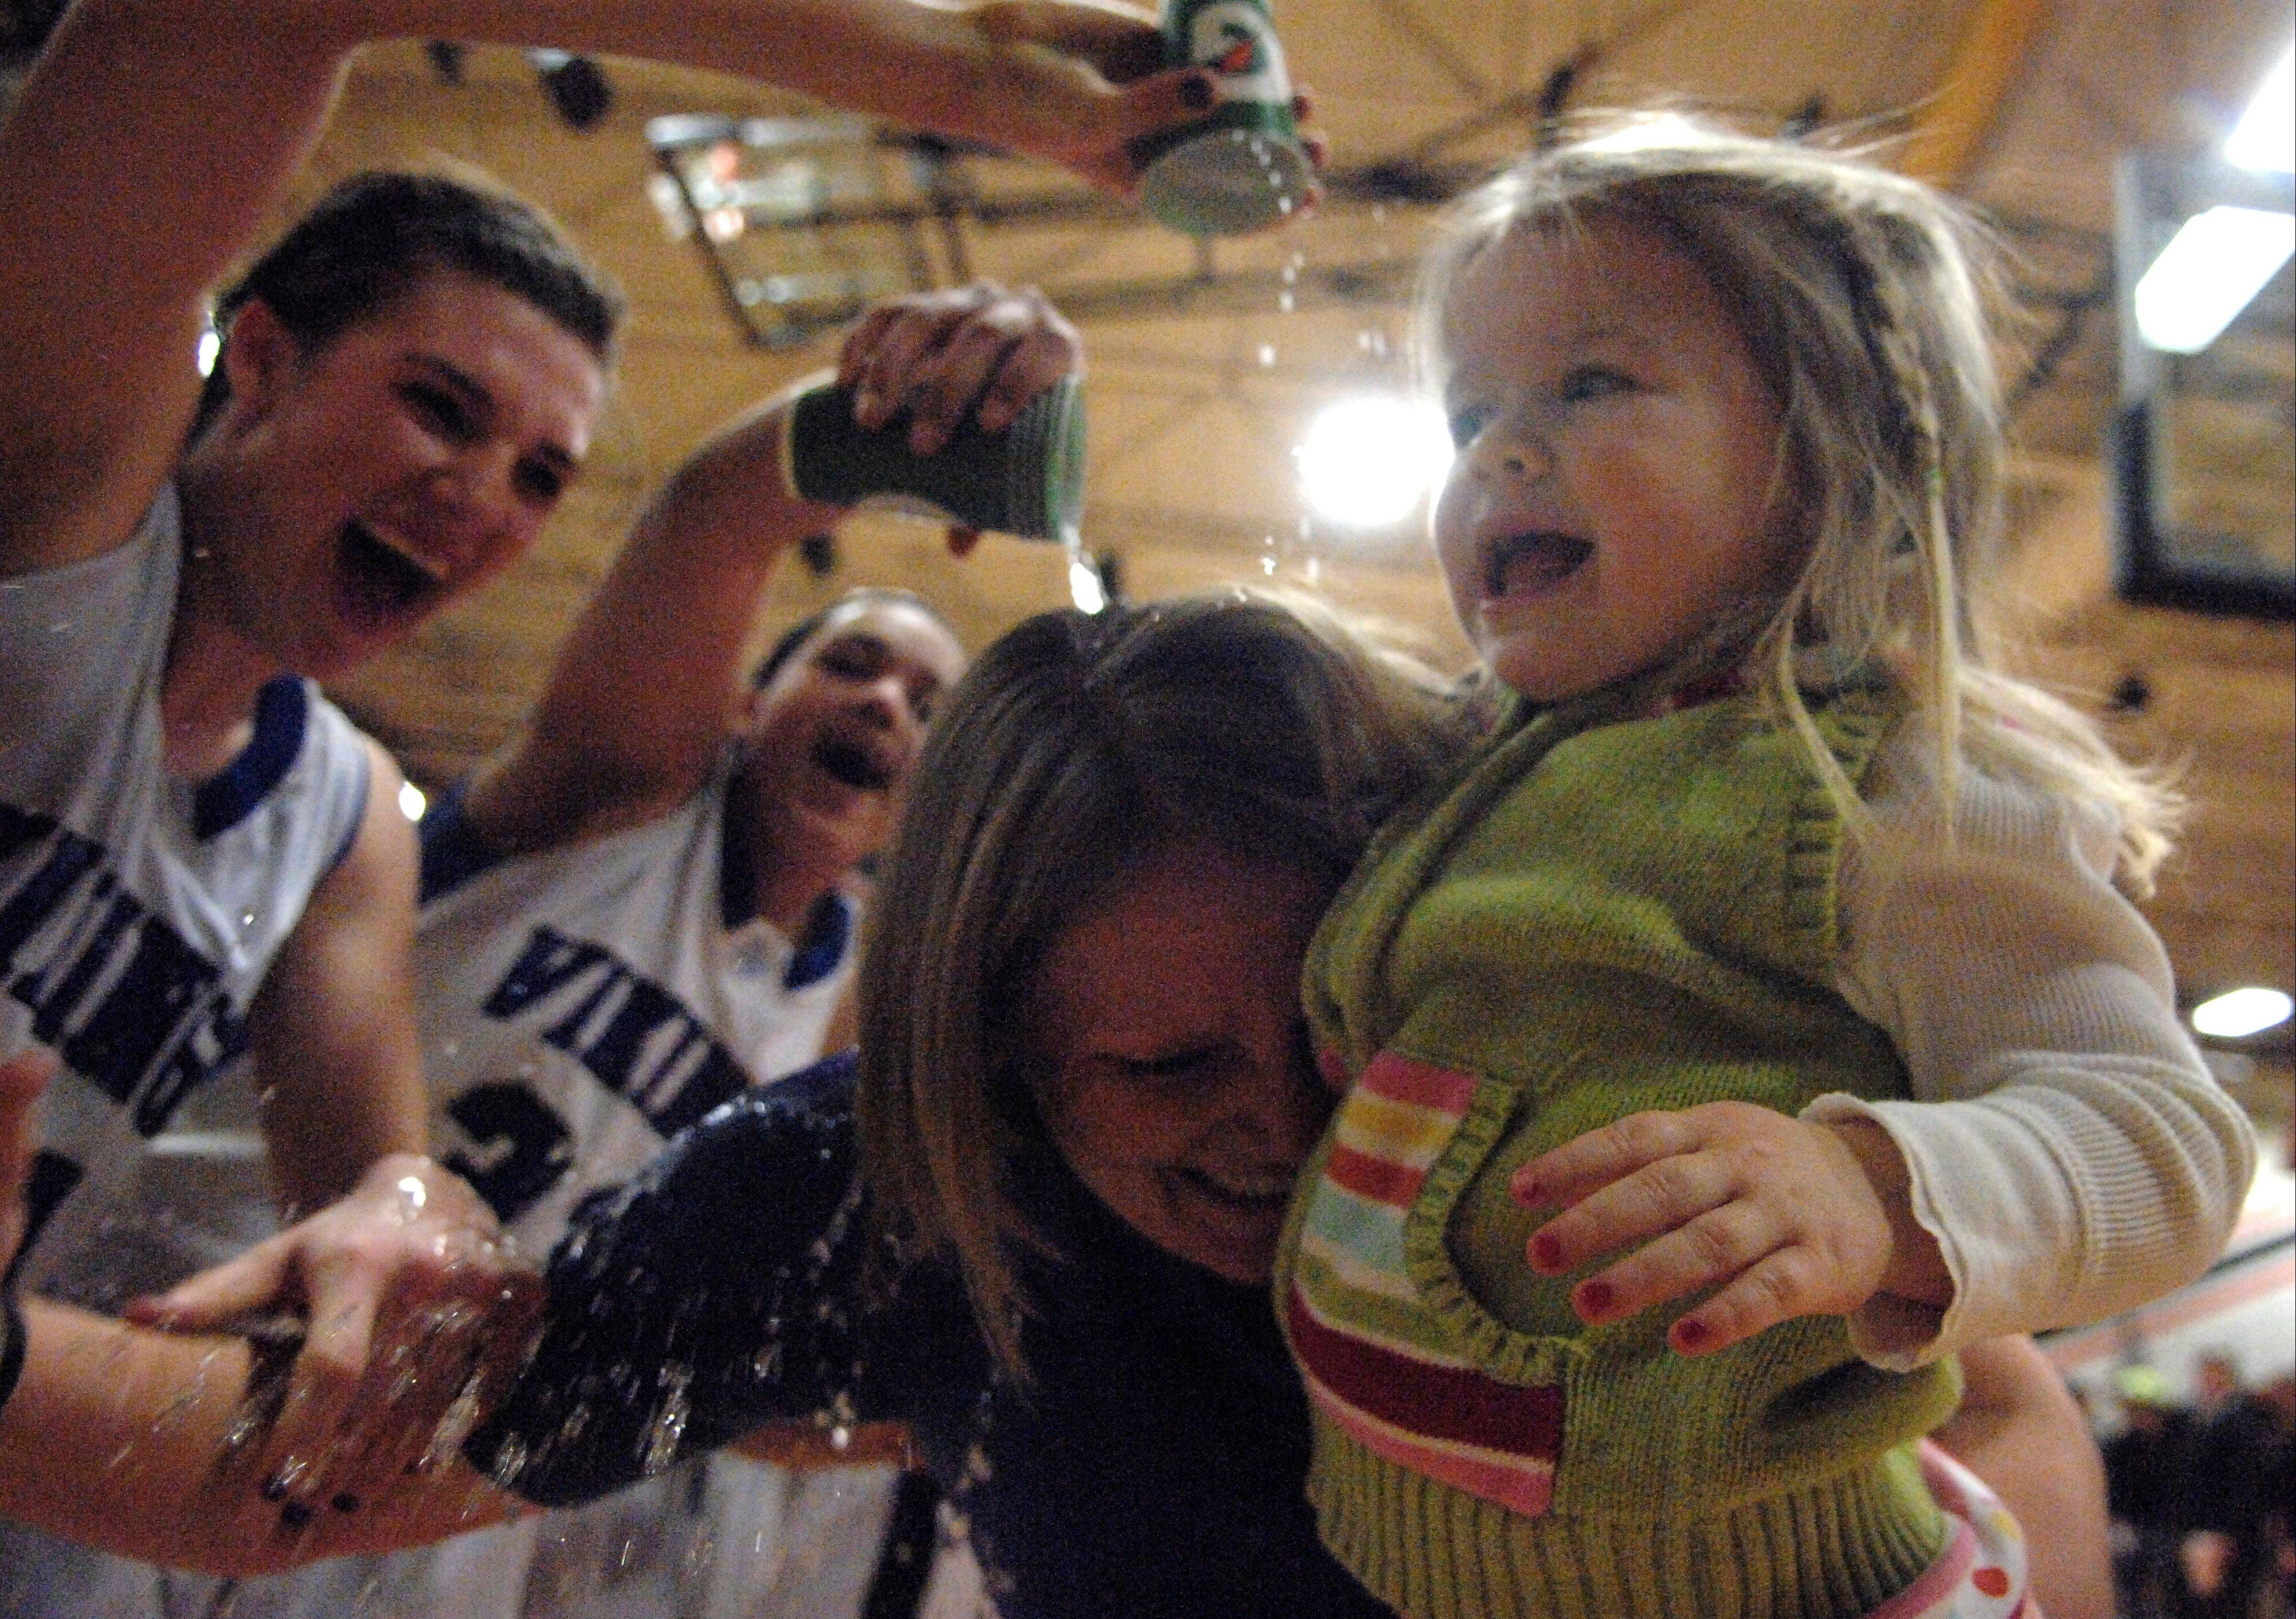 Geneva coach Sarah Meadows holds her niece Tess Kissack, 2, while her teams dumps cups of water on her following their win.